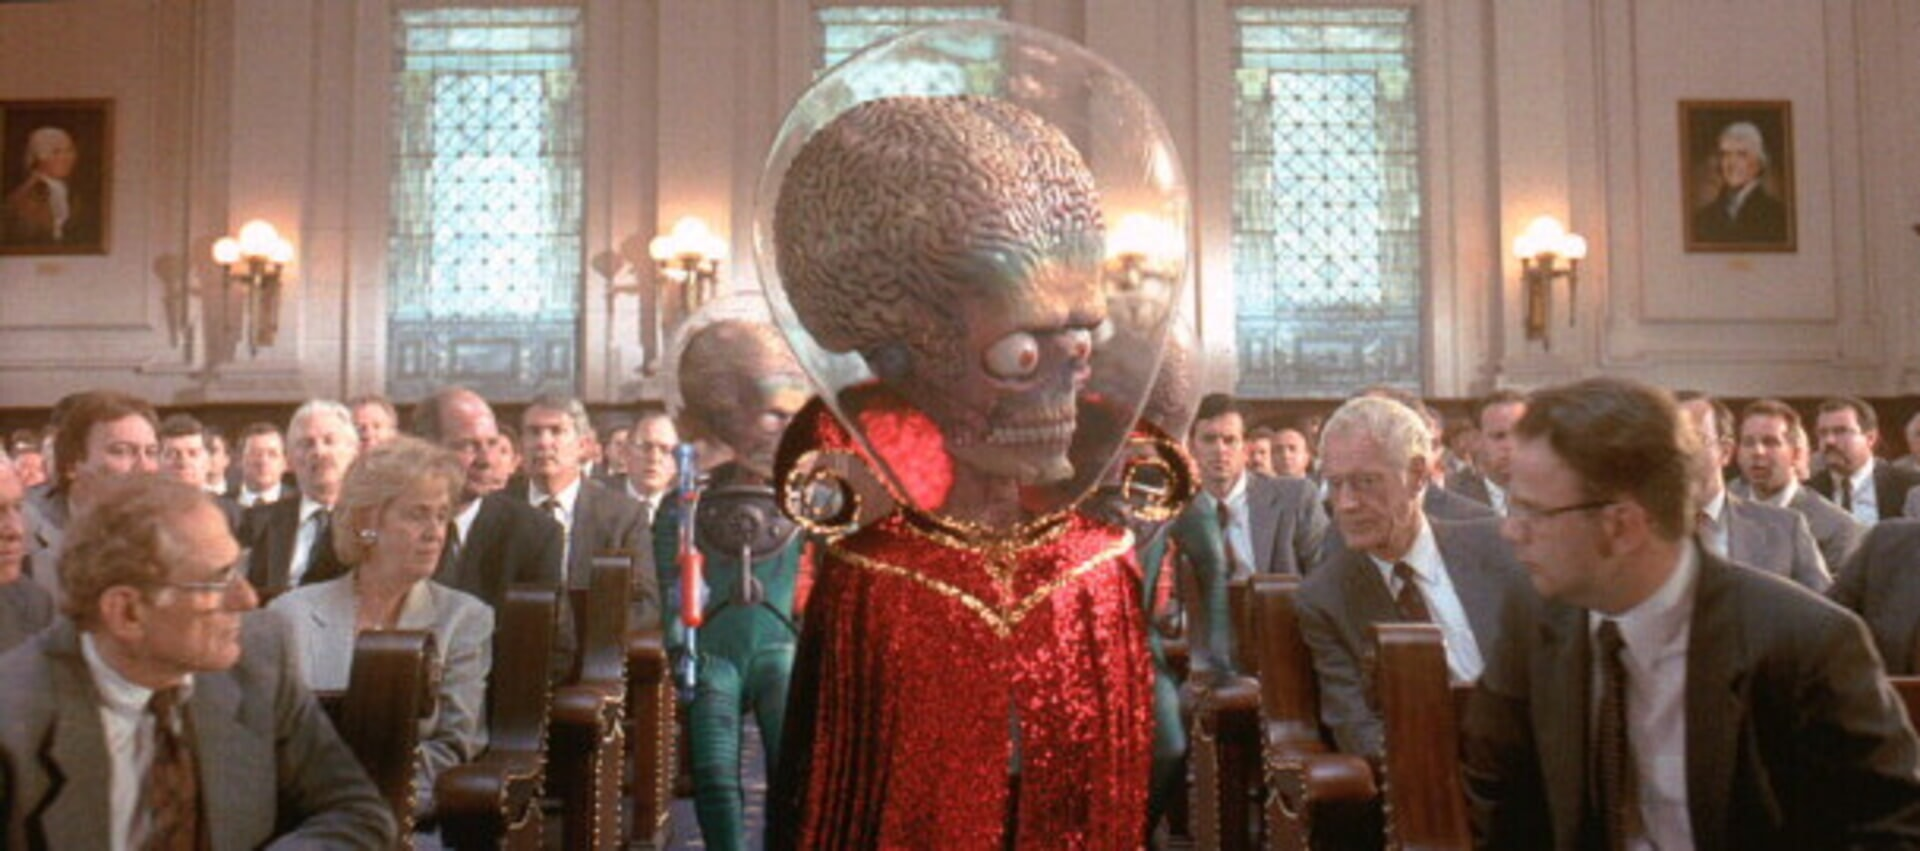 Mars Attacks! - Image 2